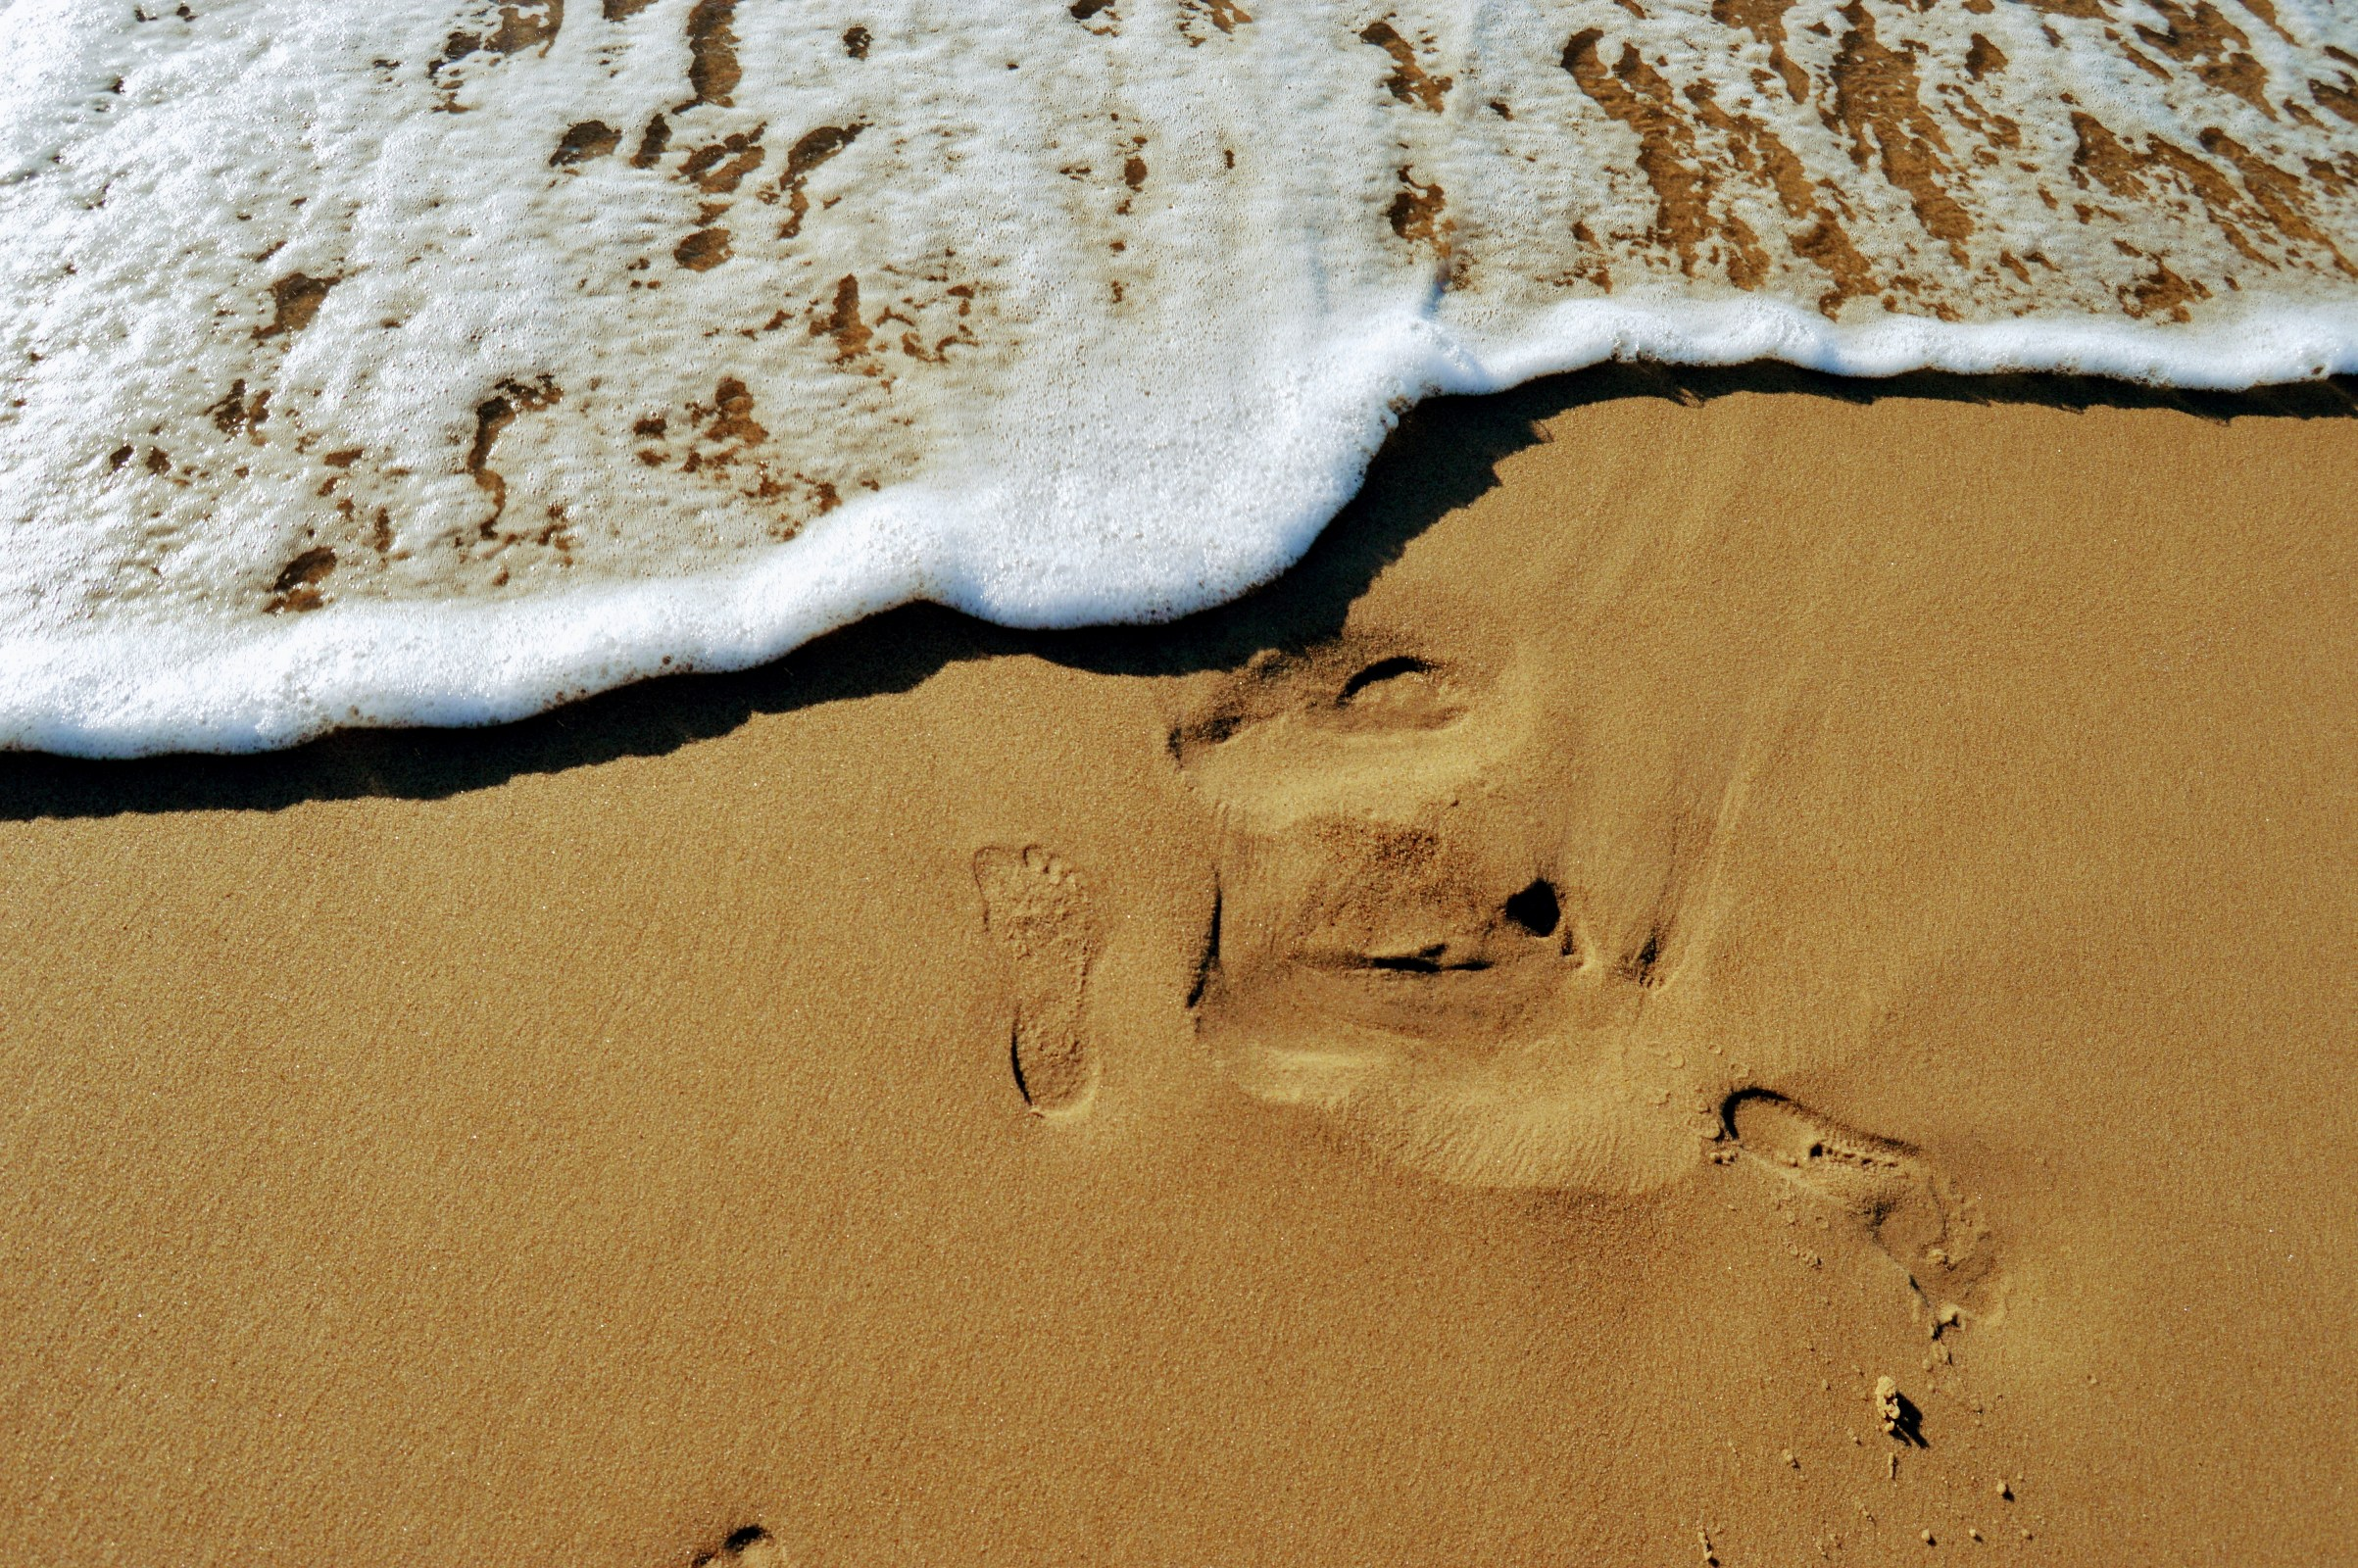 The imprint of a bare foot on the sand photo